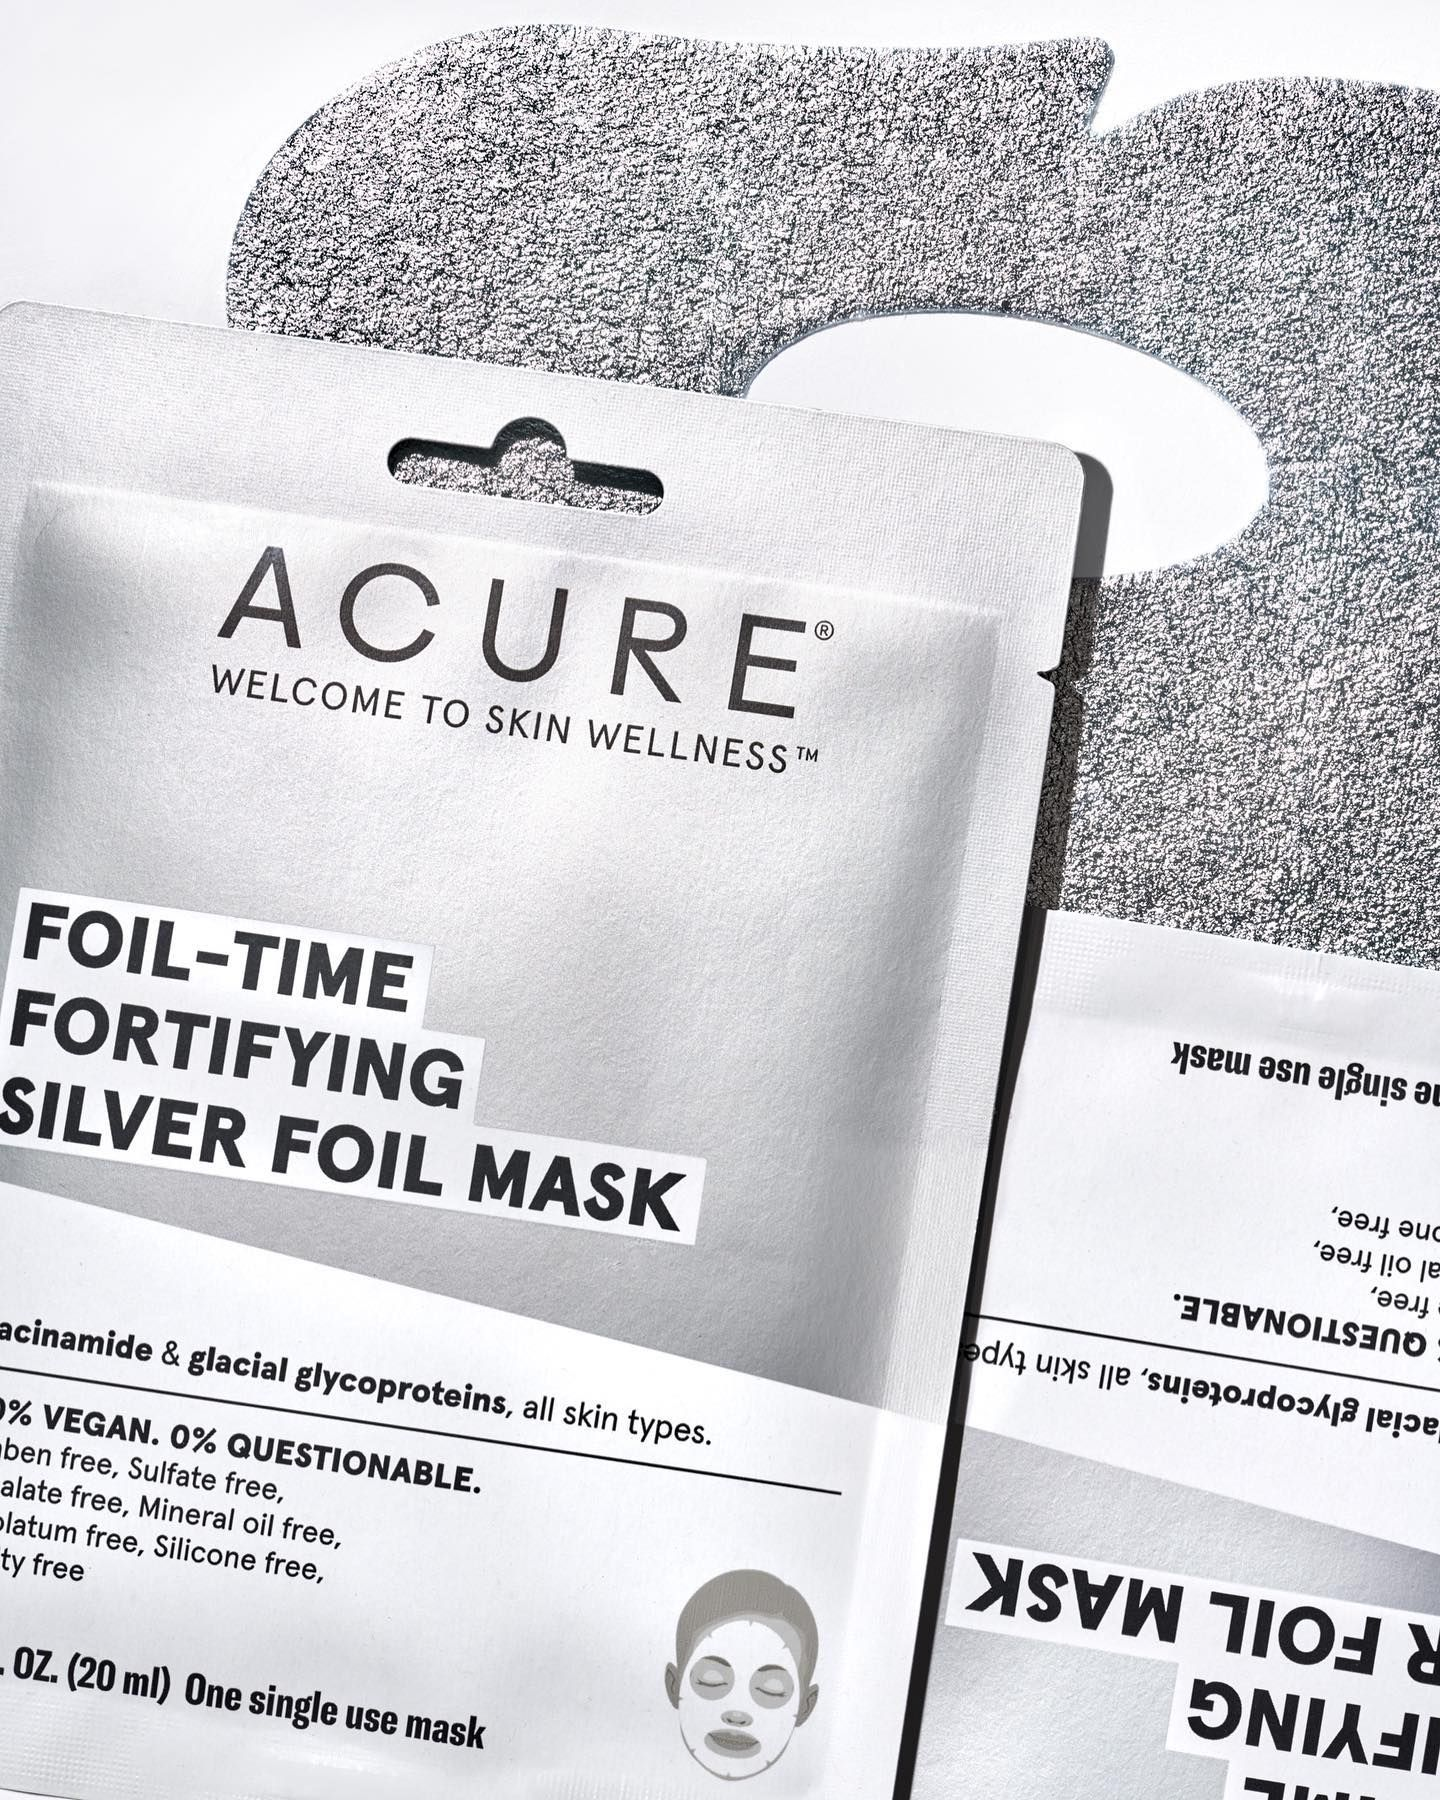 Foil-time Fortifying Silver Foil Mask In 2020